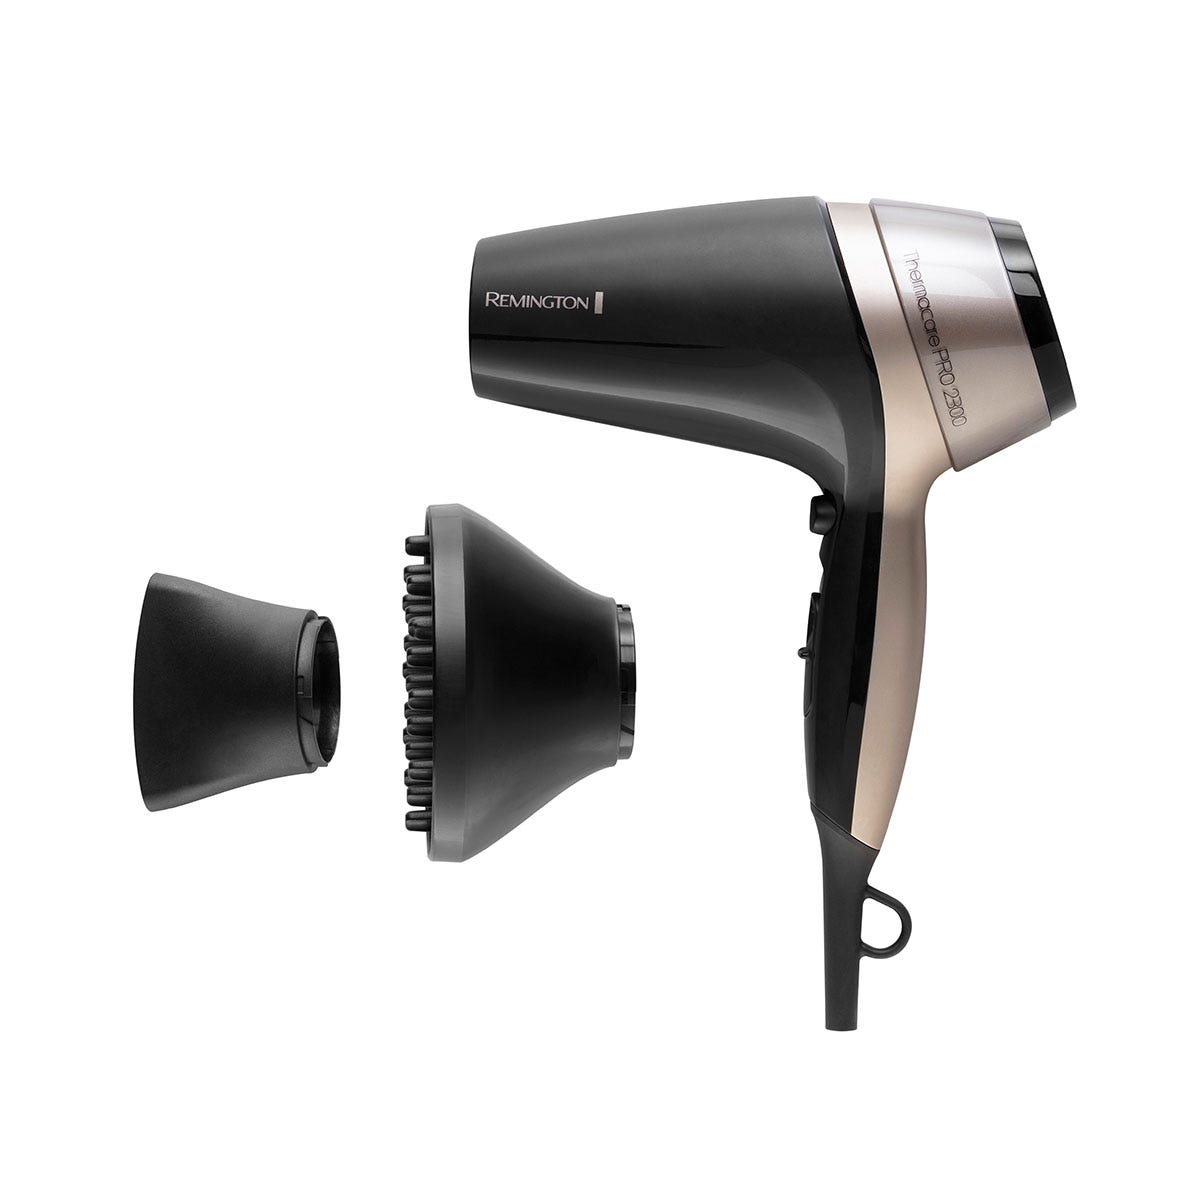 Remington D5715 Thermacare Pro 2300 Hairdryer - Black and Pink